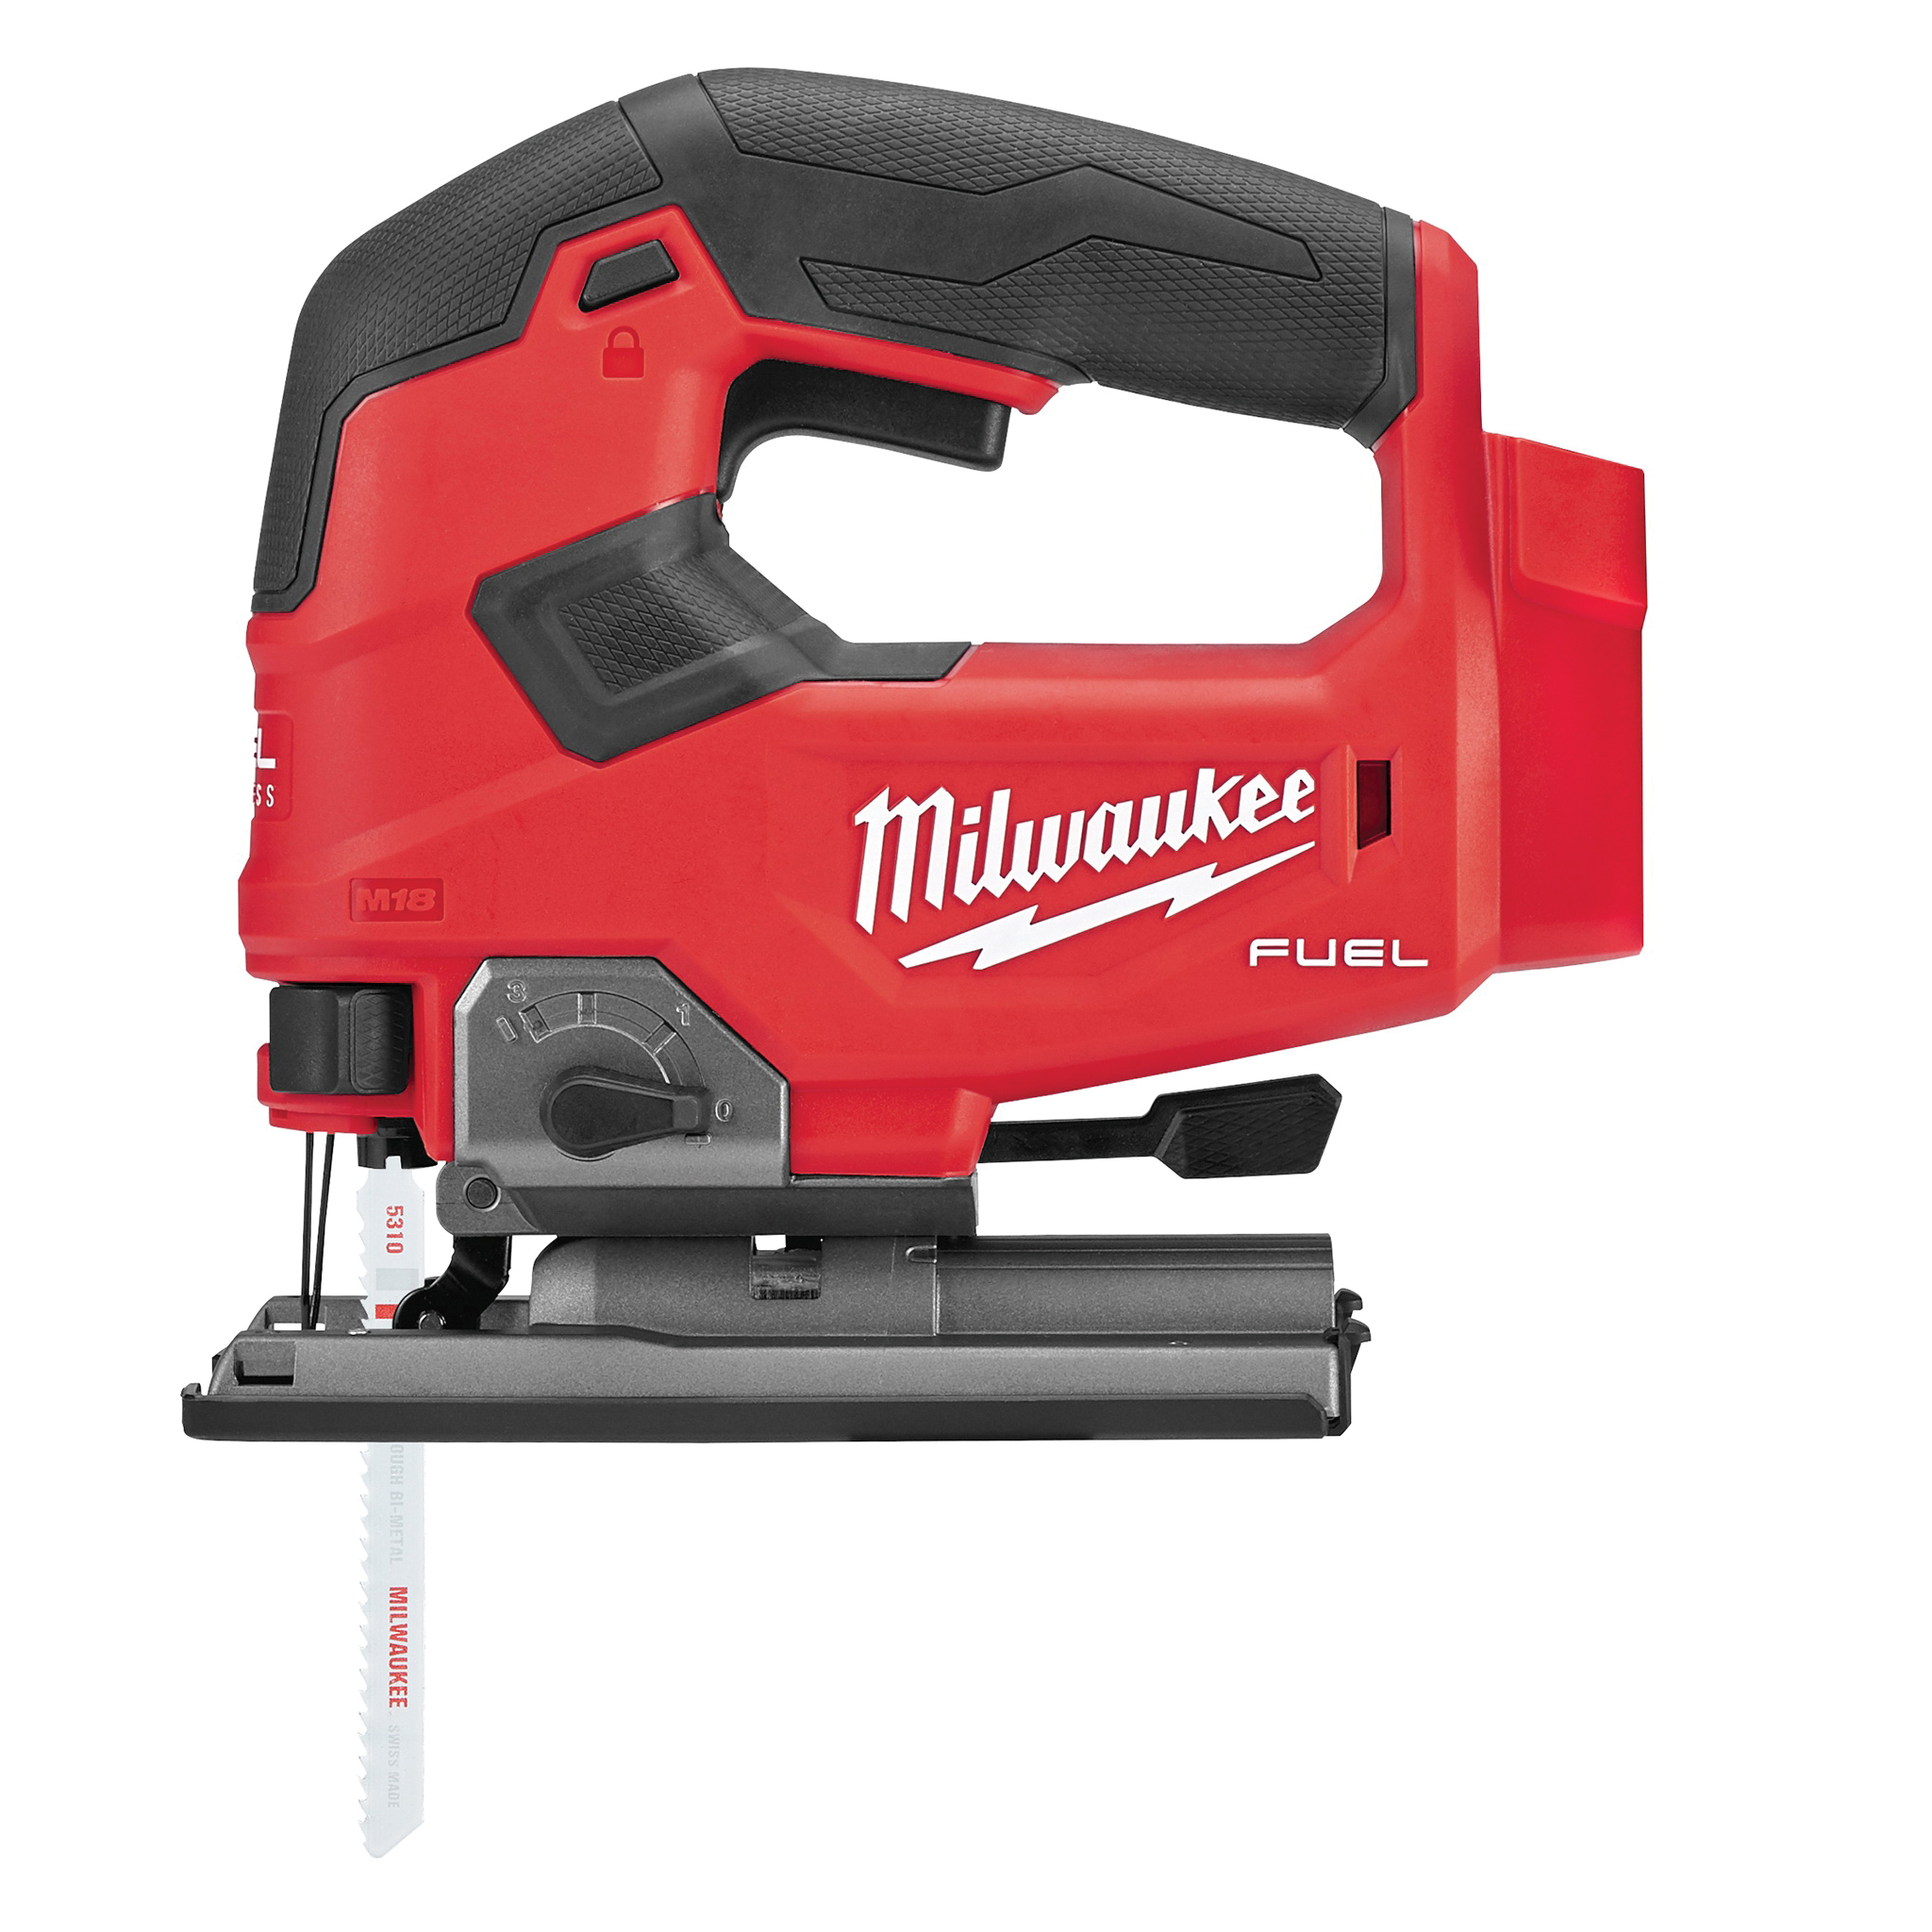 Picture of Milwaukee M18 FUEL 2737-20 Jig Saw, Bare Tool, 18 V Battery, 5 Ah, 5-1/2 in Wood Cutting Capacity, 1 in L Stroke